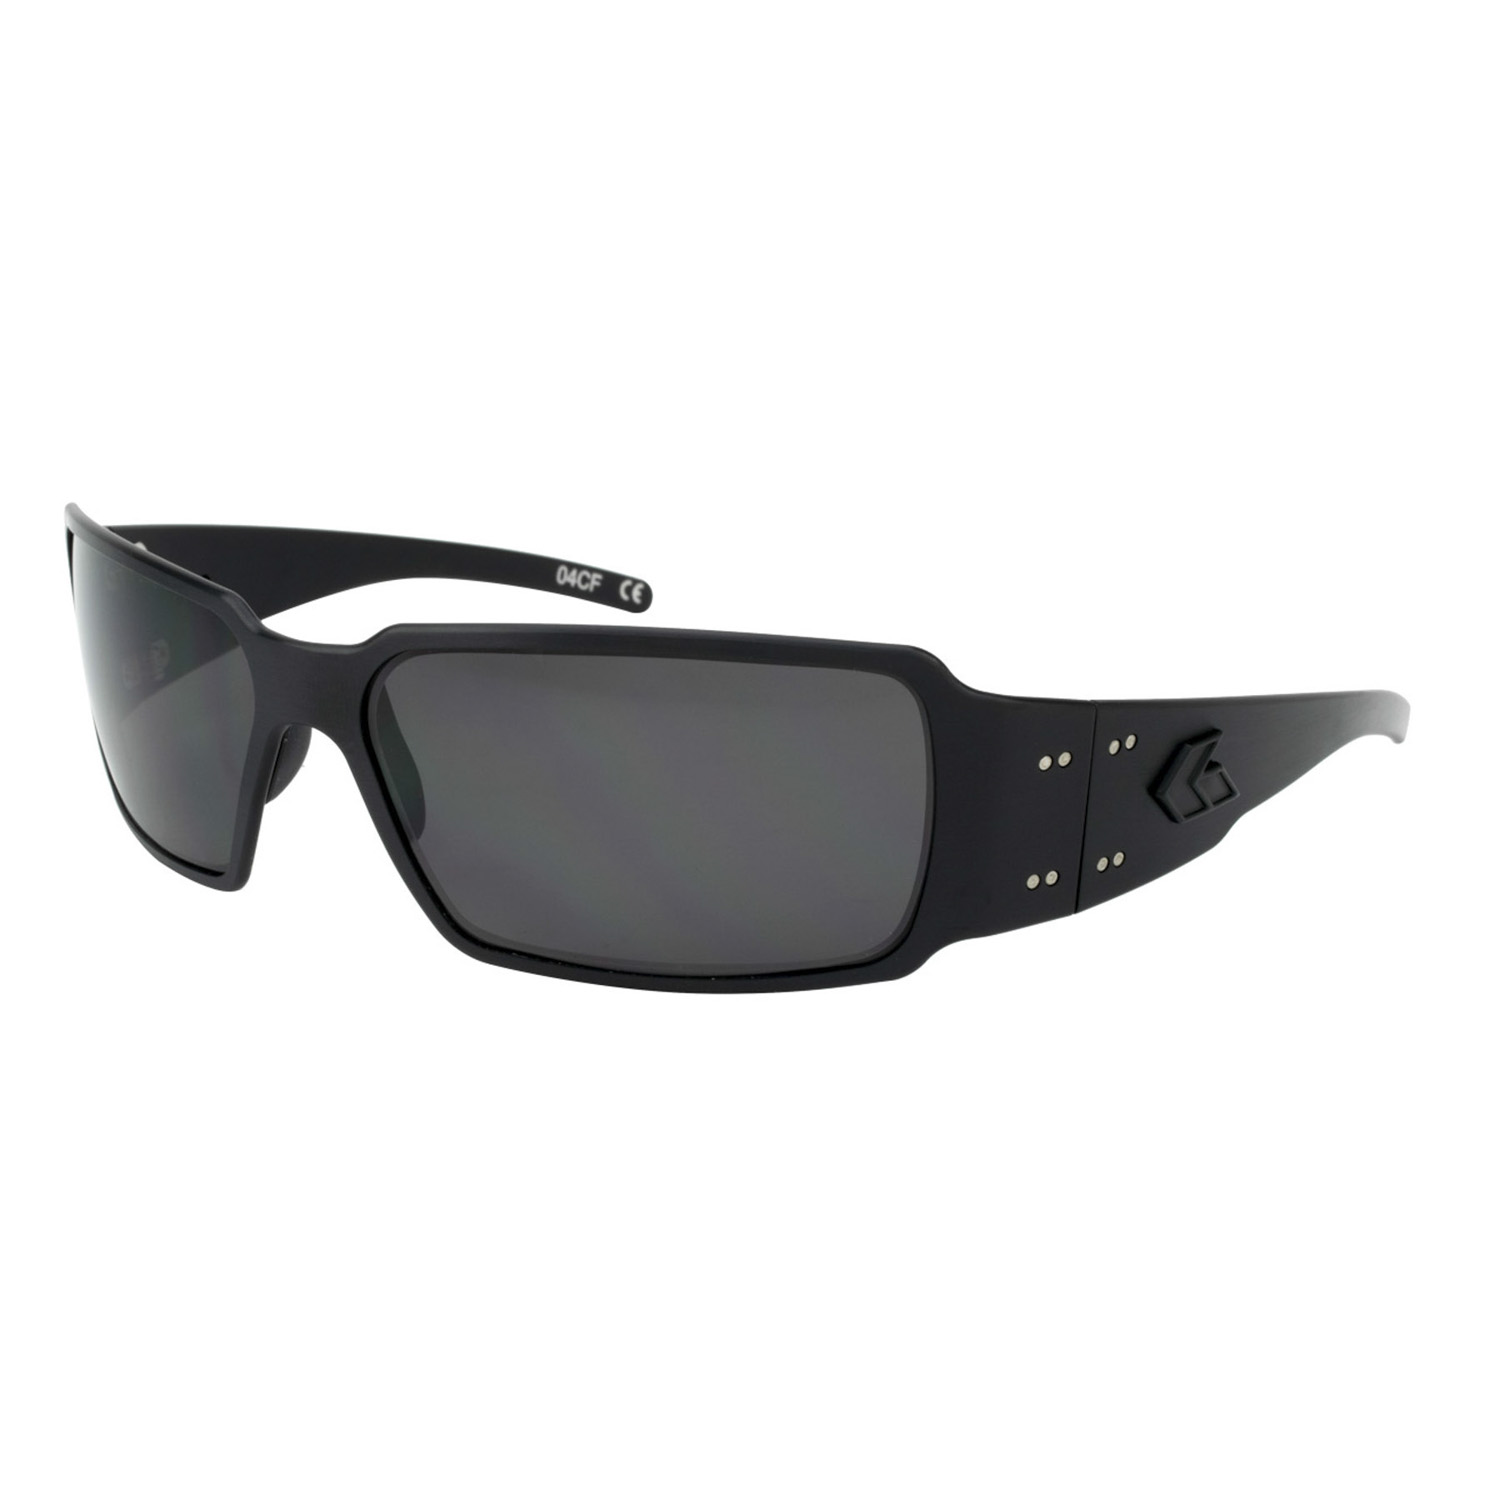 Gatorz Boxster Blackout Sunglasses with Polorized Lens